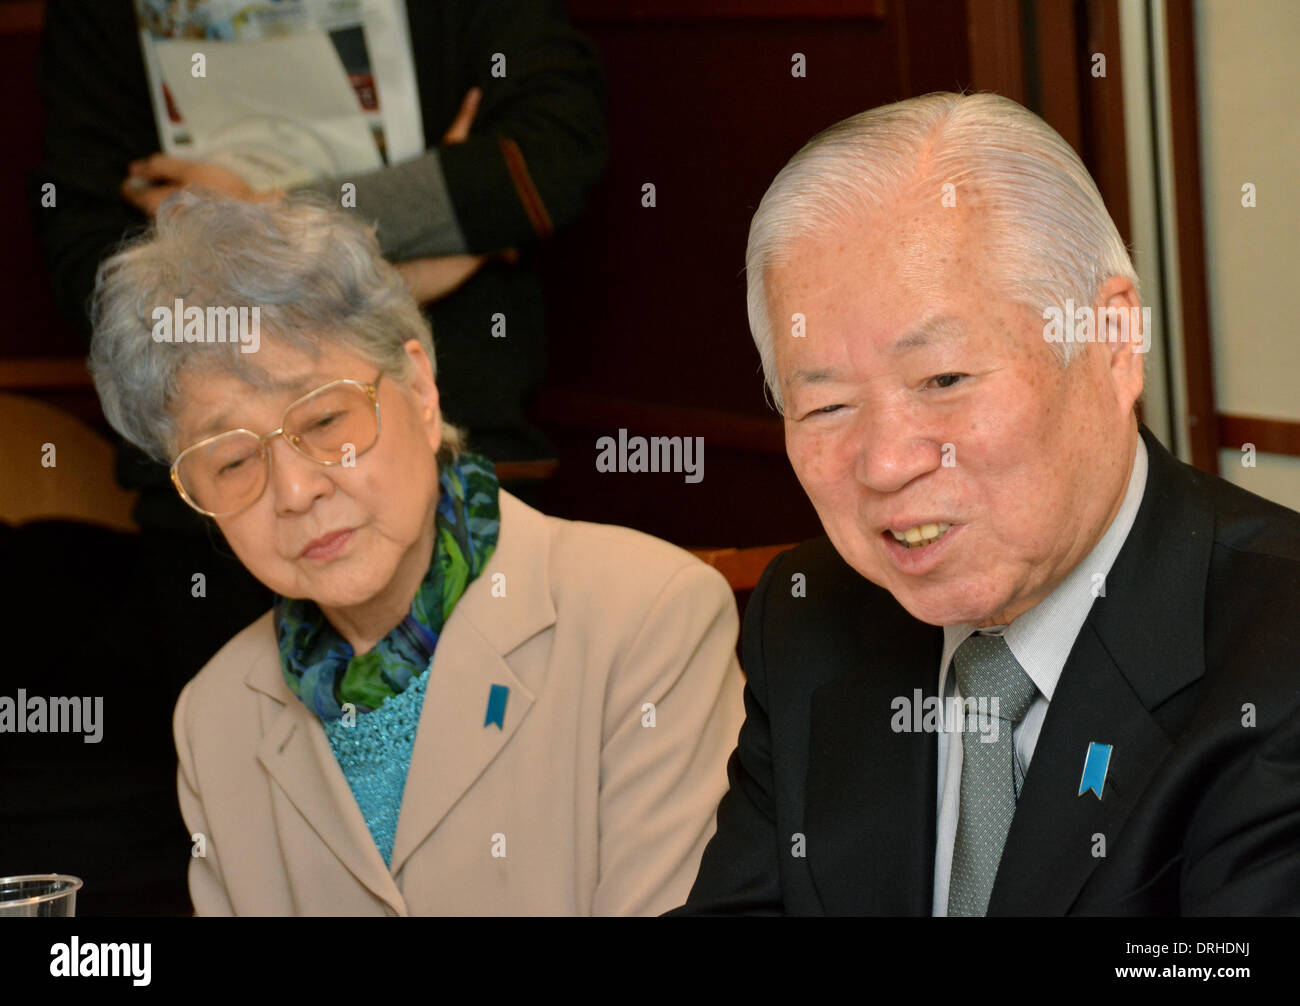 Tokyo, Japan. 27th Jan, 2014. Shigeru, right, and Sakie Yokota, parents of Japanese abductee Megumi Yokota, meet Japanese media at Tokyo Foreign Correspondents Club of Japan on Monday, January 27, 2014. The Yokotas were on hand for a news conference during which a North Korean defector spoke about his life at a North Korean concentration camp, from which he managed to escape in 2005. Ms Yokota was abducted by a North Korean agent in 1977 when she was 13 years old. © Natsuki Sakai/AFLO/Alamy Live News - Stock Image